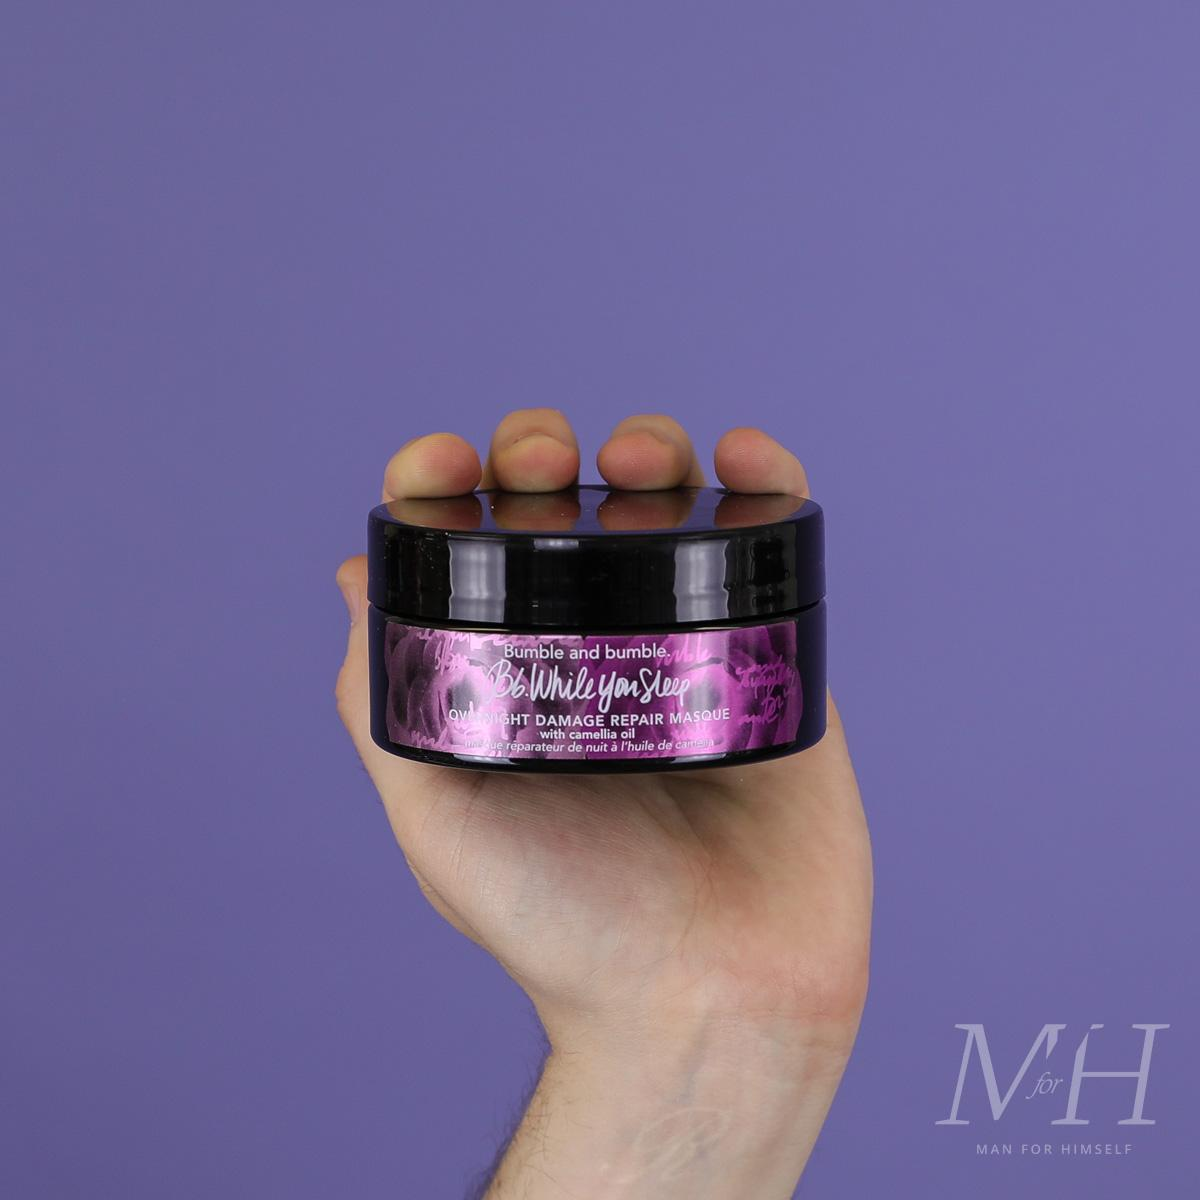 bumble-and-bumble-while-you-sleep-repair-masque-product-review-man-for-himself